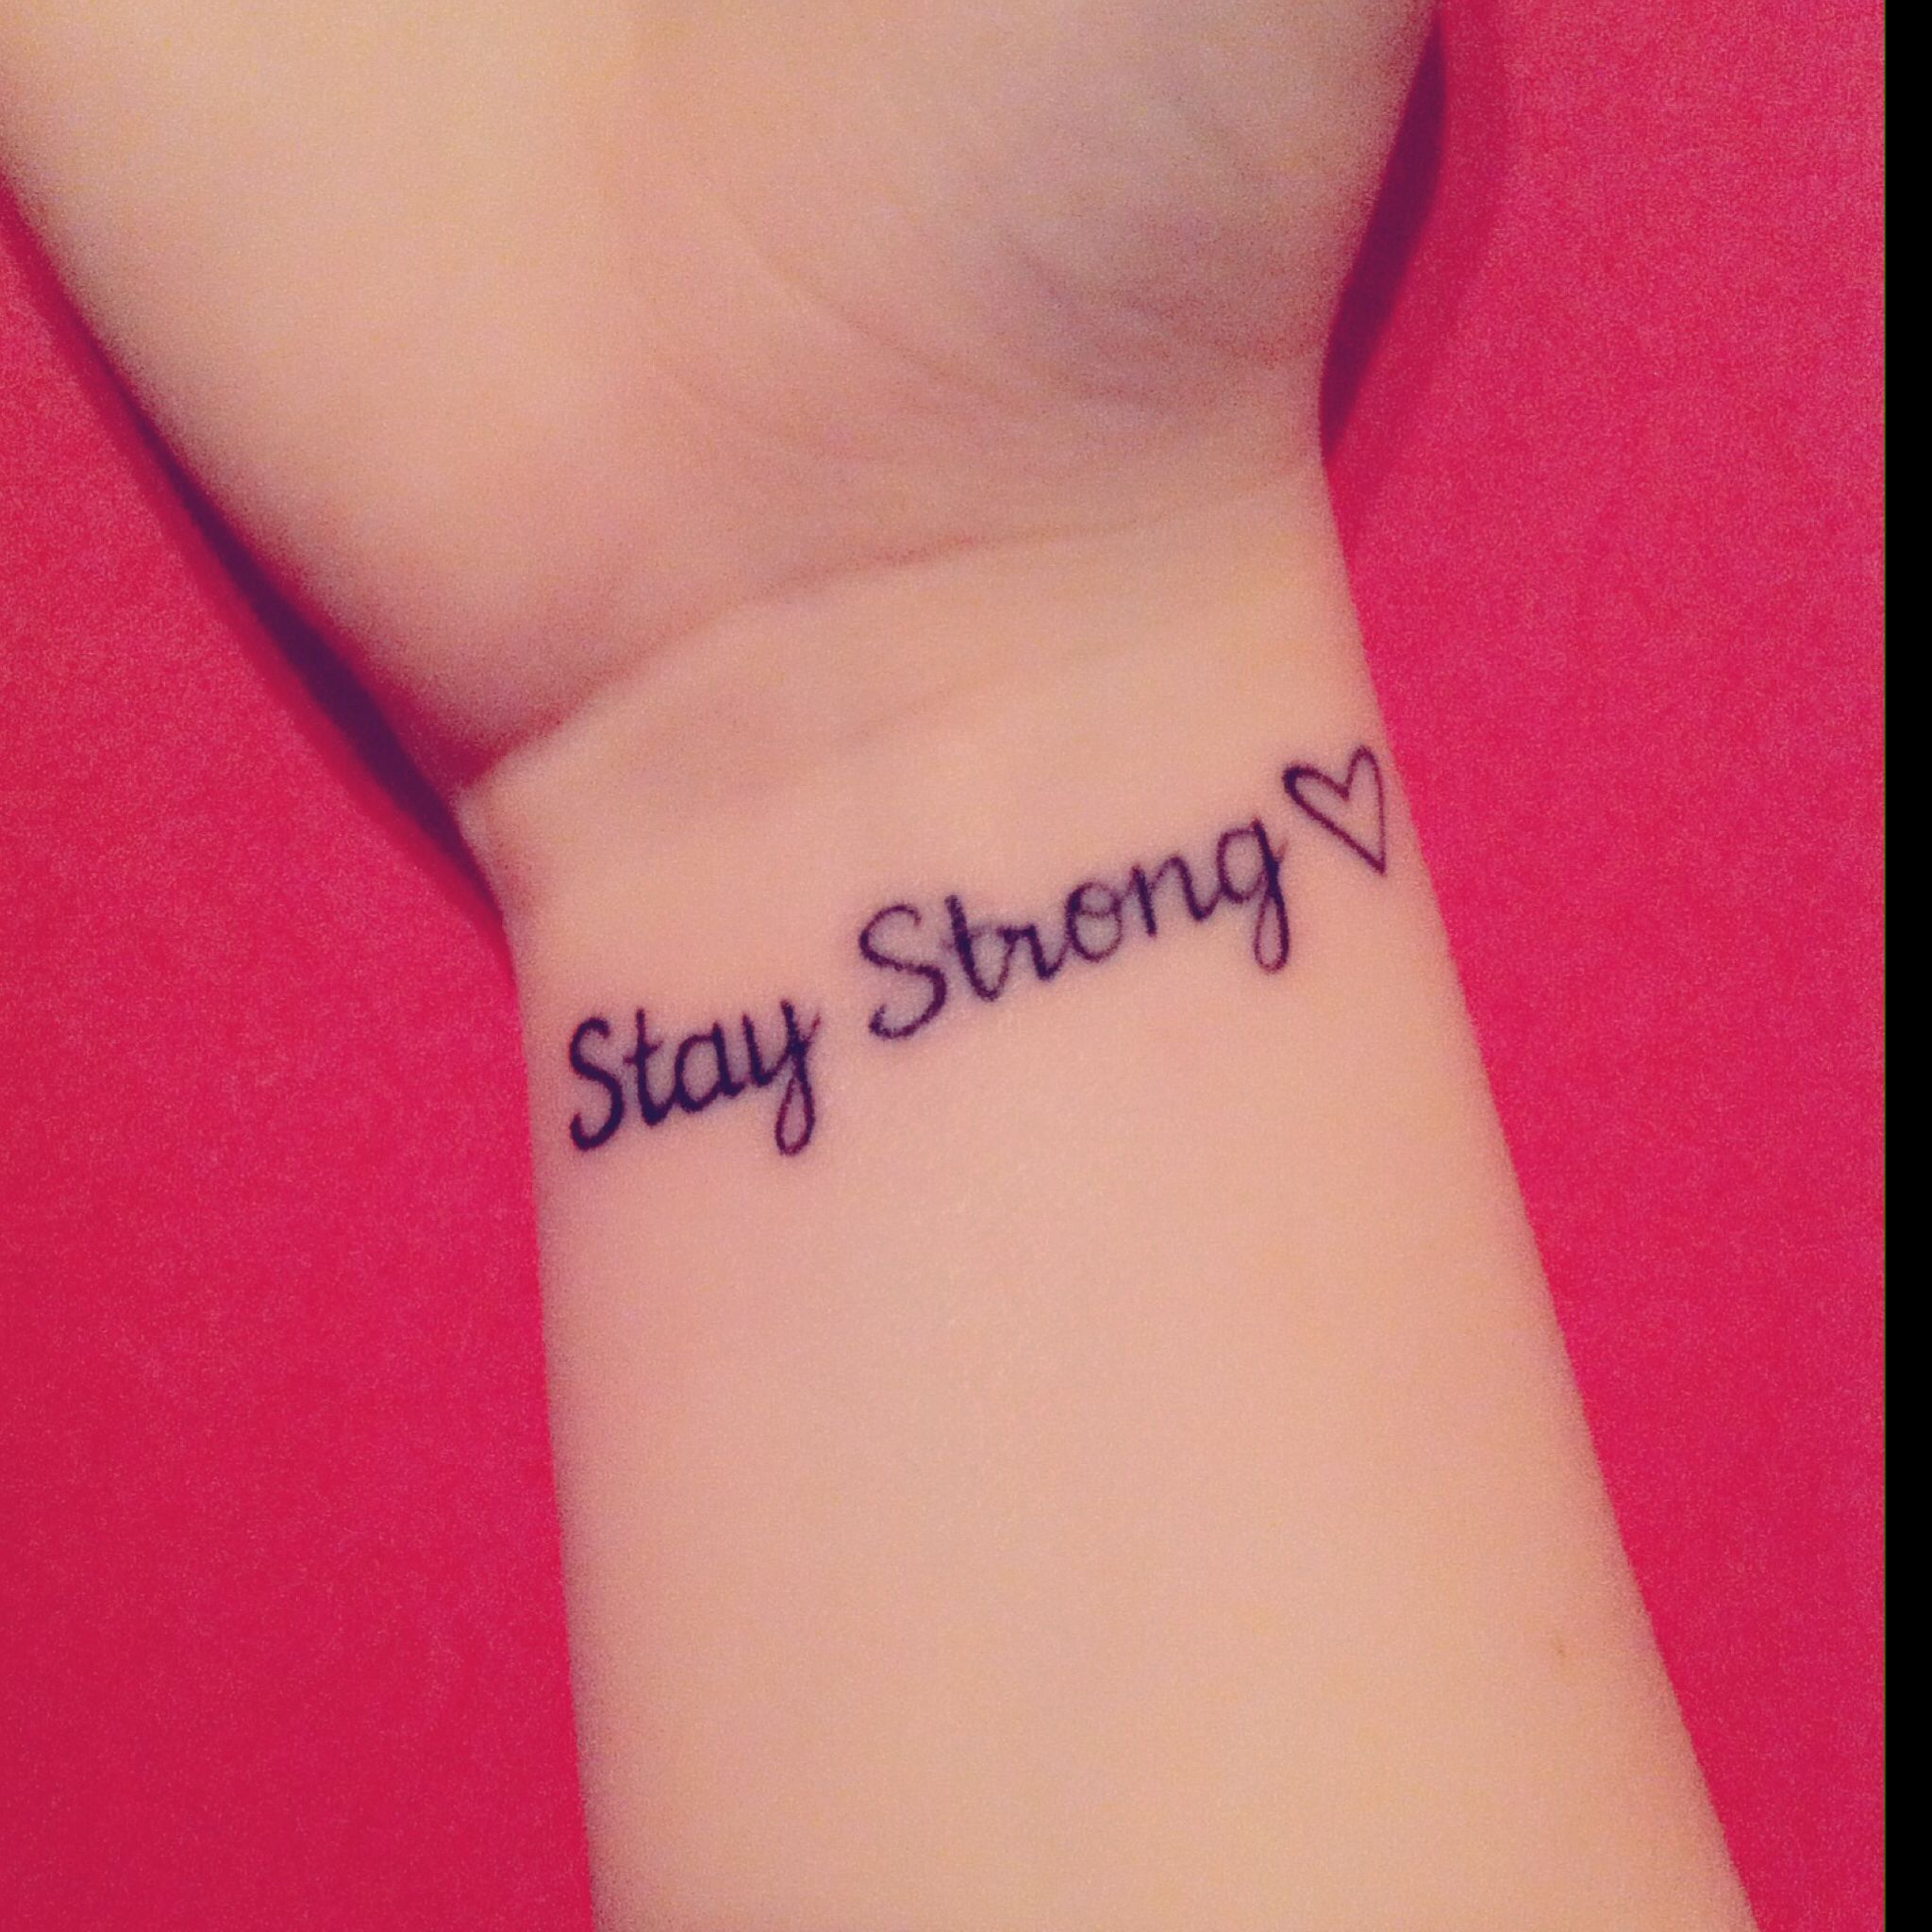 my first tattoo proud of it stay strong tattoo small tattoo tats pinterest tattoo small. Black Bedroom Furniture Sets. Home Design Ideas